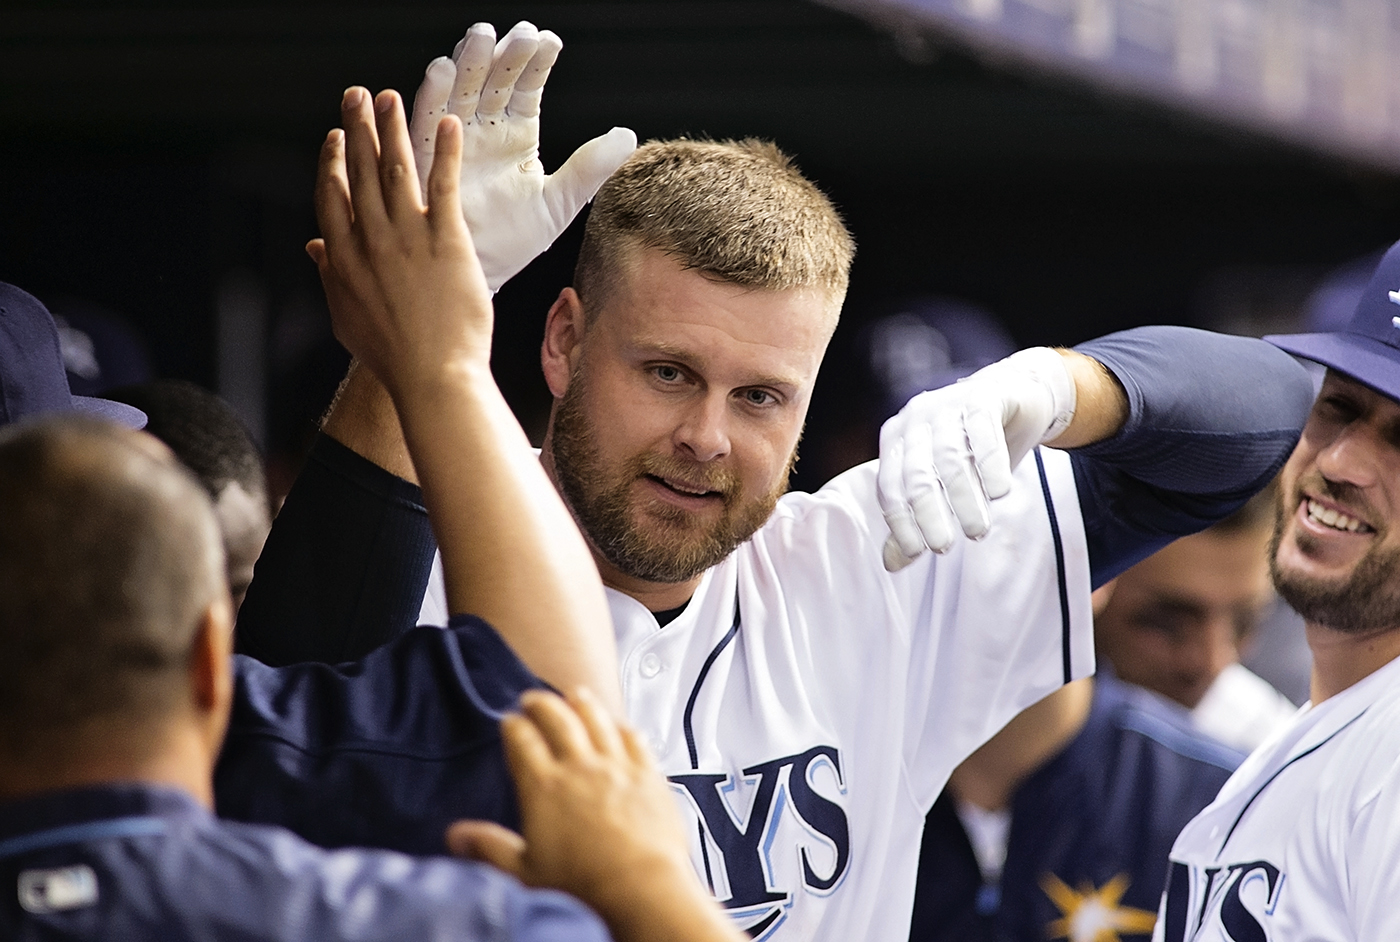 Duda celebrates home run to lead Rays./CARMEN MANDATO